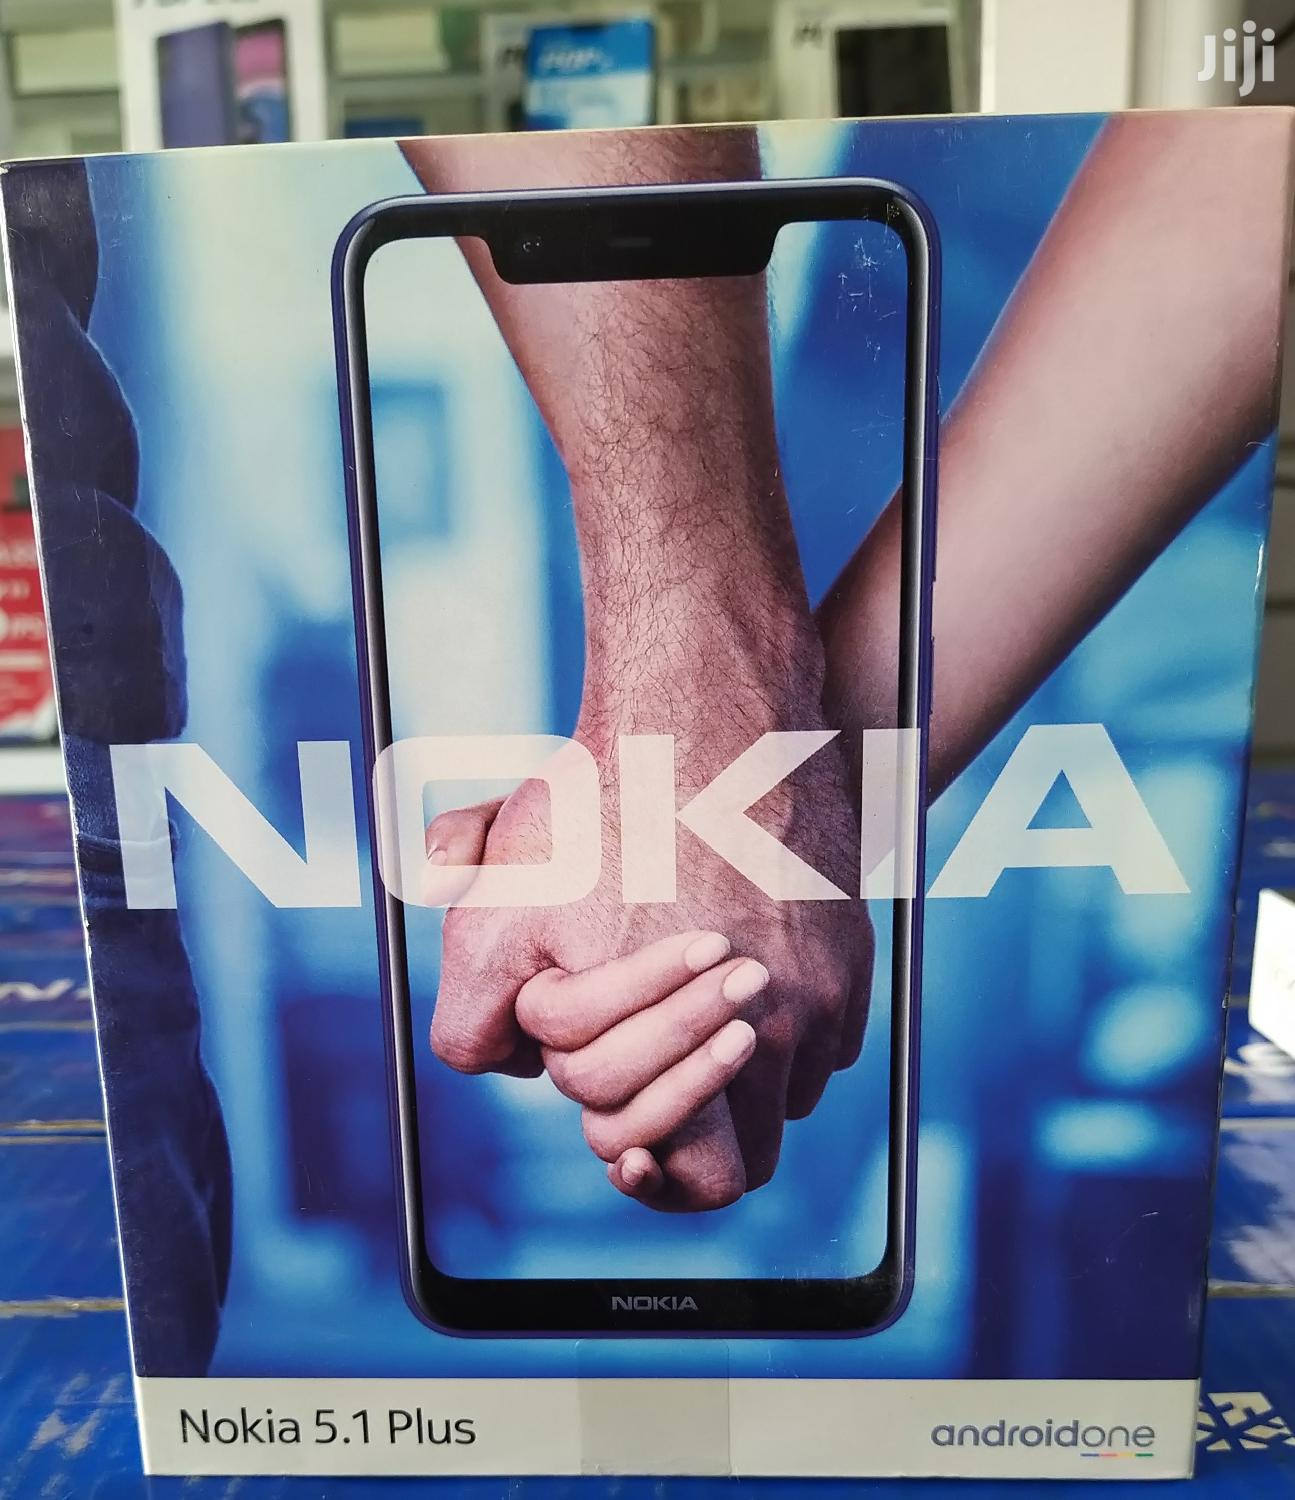 New Nokia 5.1 Plus (X5) 32 GB Black | Mobile Phones for sale in Avenor Area, Greater Accra, Ghana